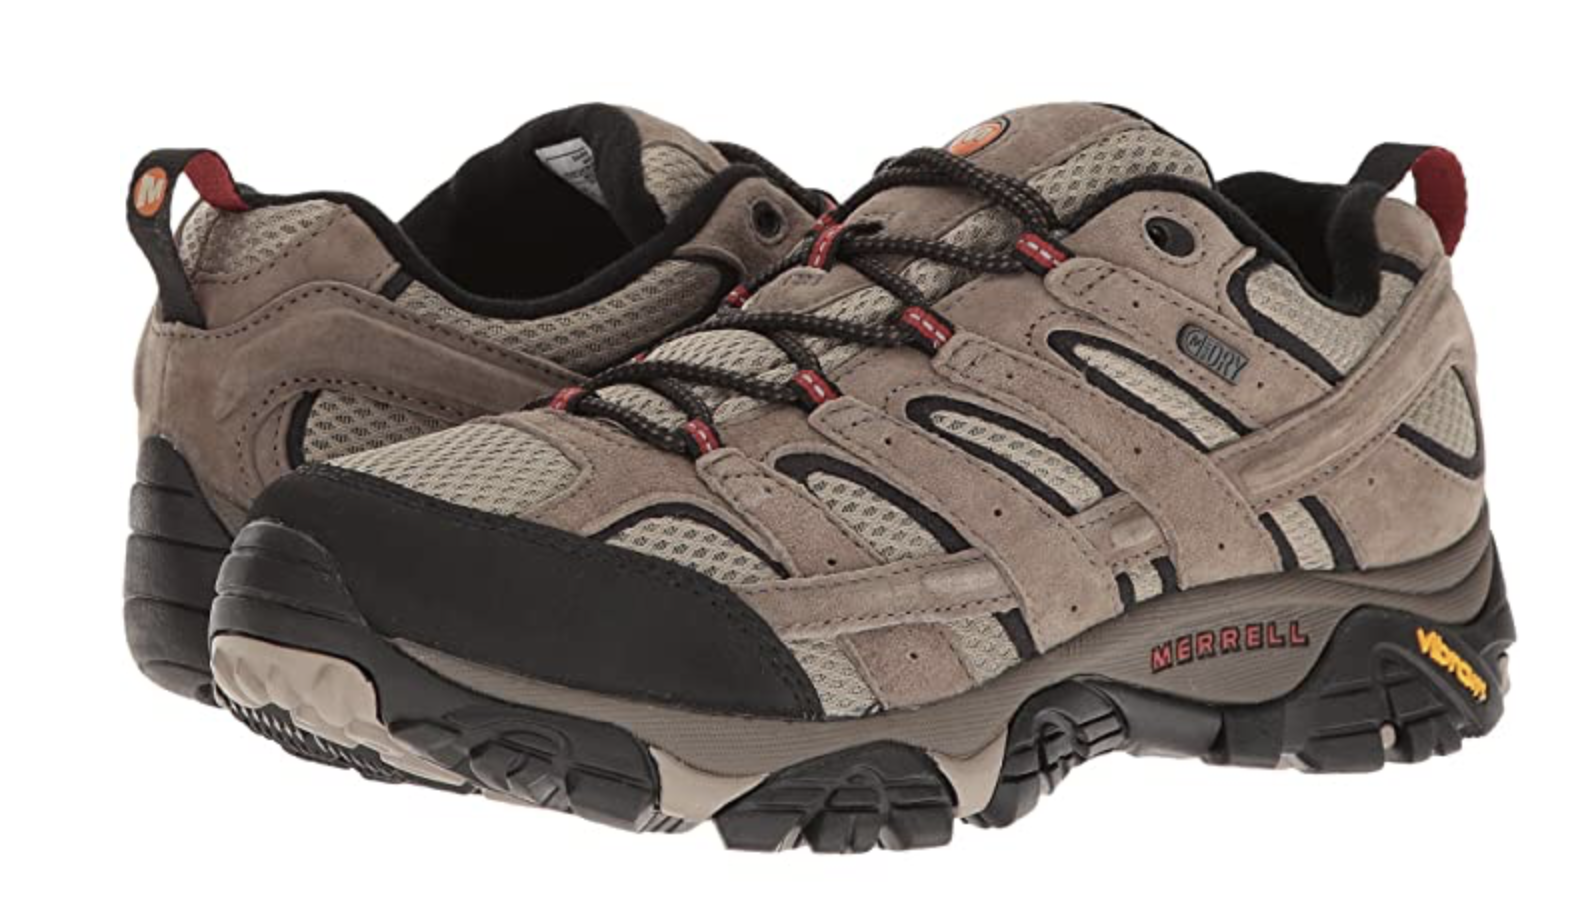 NEW Merrell Men Moab 2 Waterproof Hiking Shoes - size 8, 10,